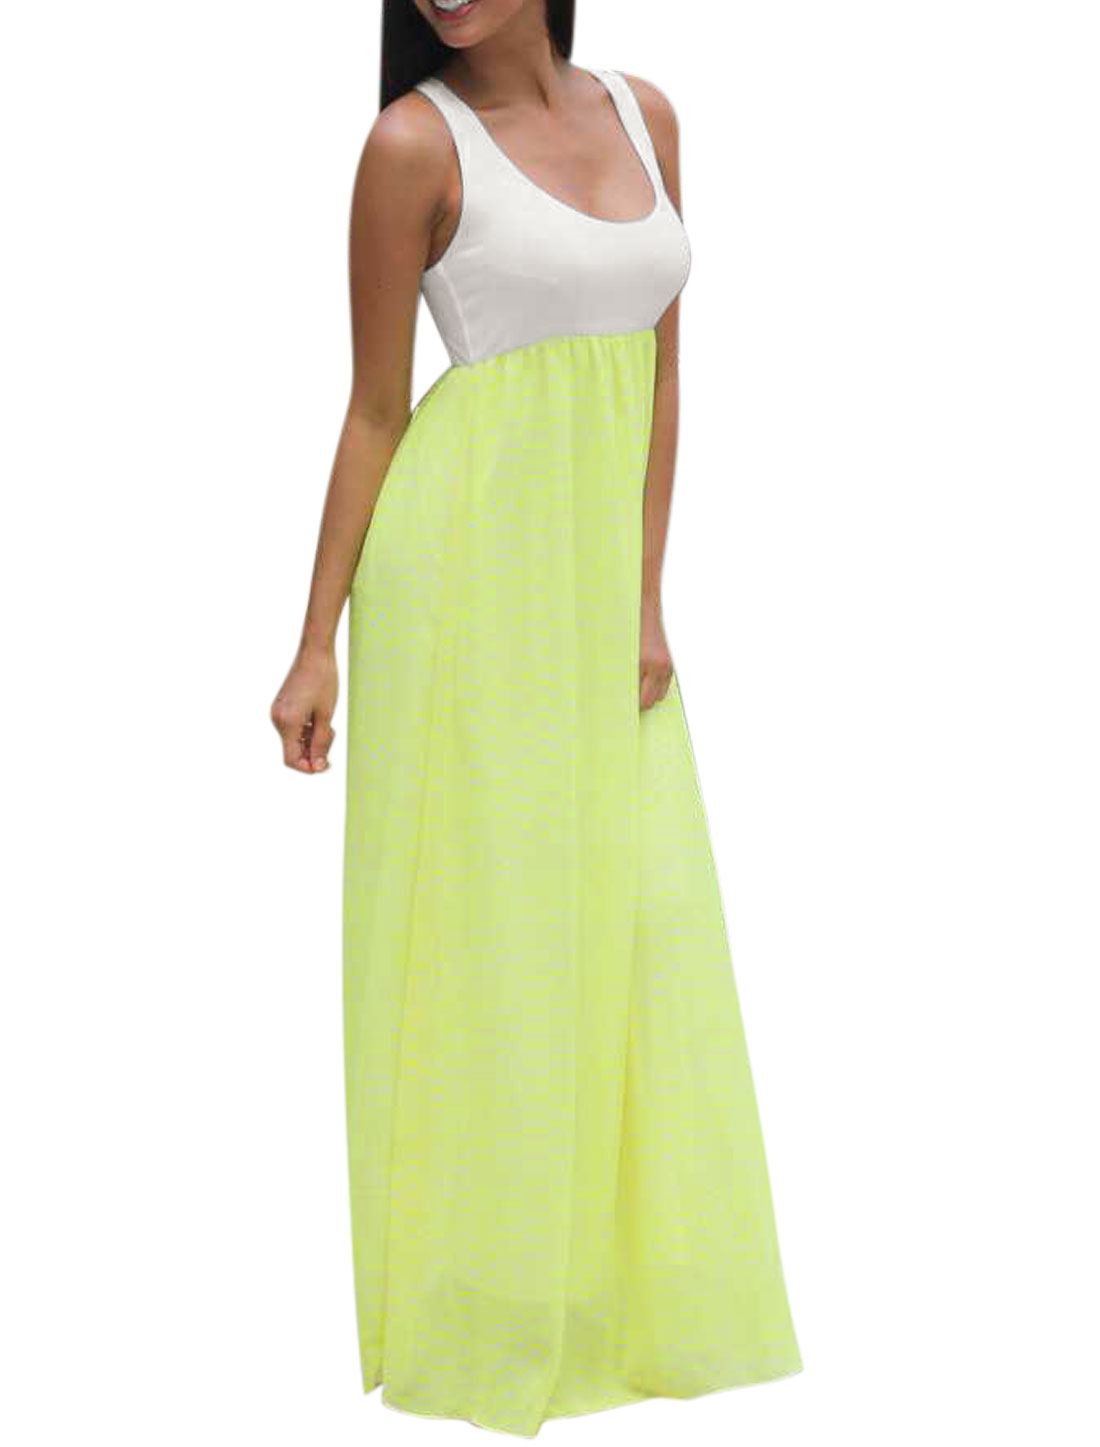 Woman Sleeveless Paneled Color Block Racer Back Maxi Dress Green M